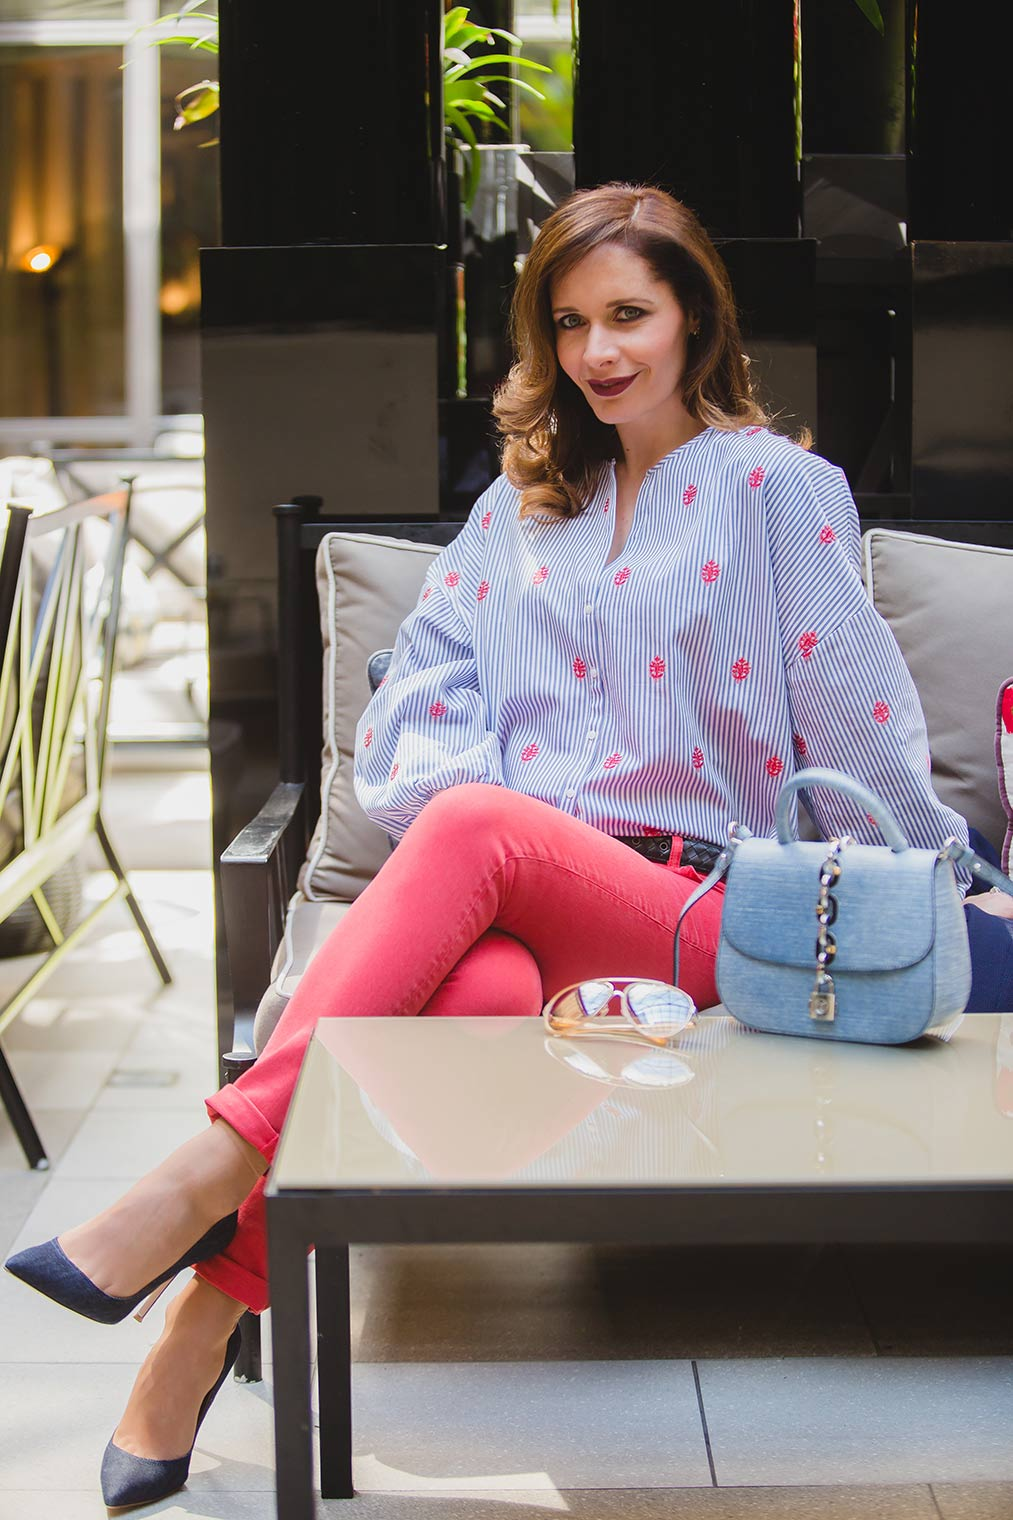 Chic Journal Petra wearing red jeans in Villa Magna